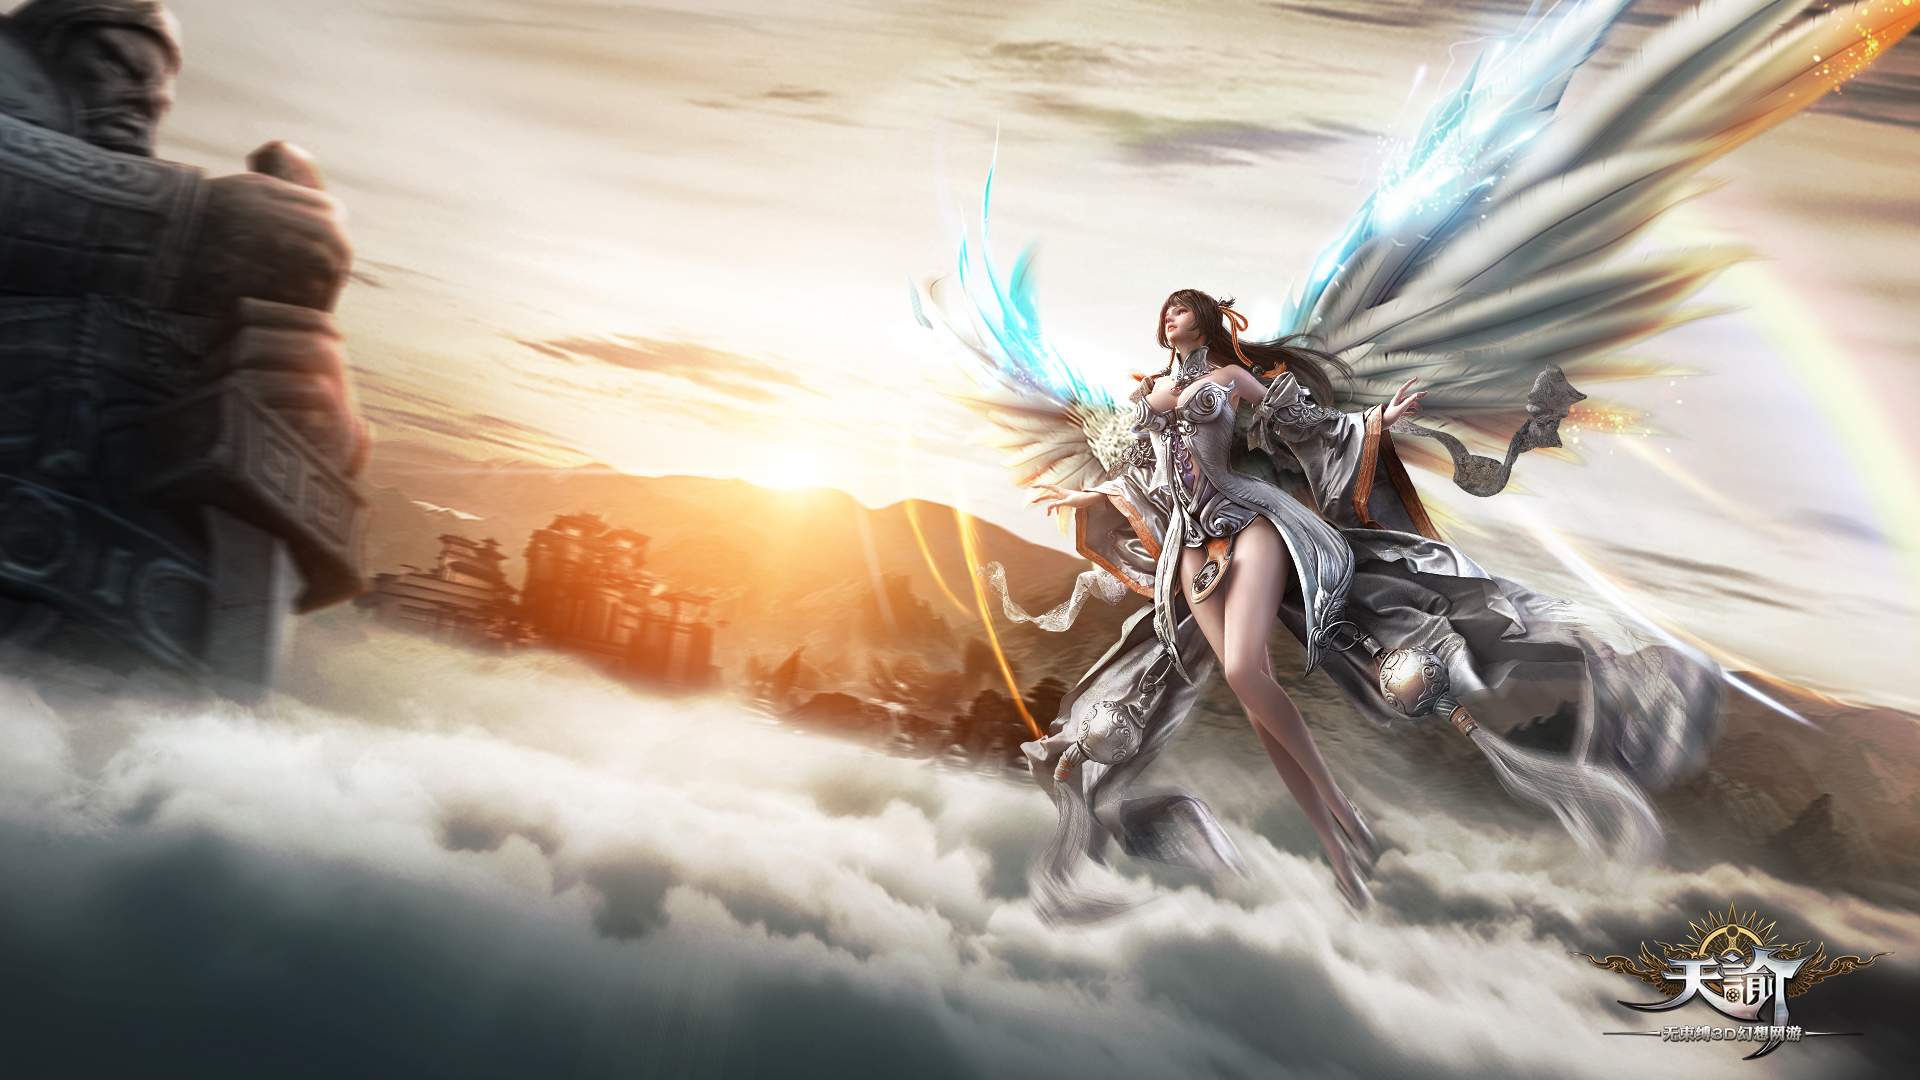 17 revelation online hd wallpapers background images wallpaper abyss - Wallpaper abyss categories ...